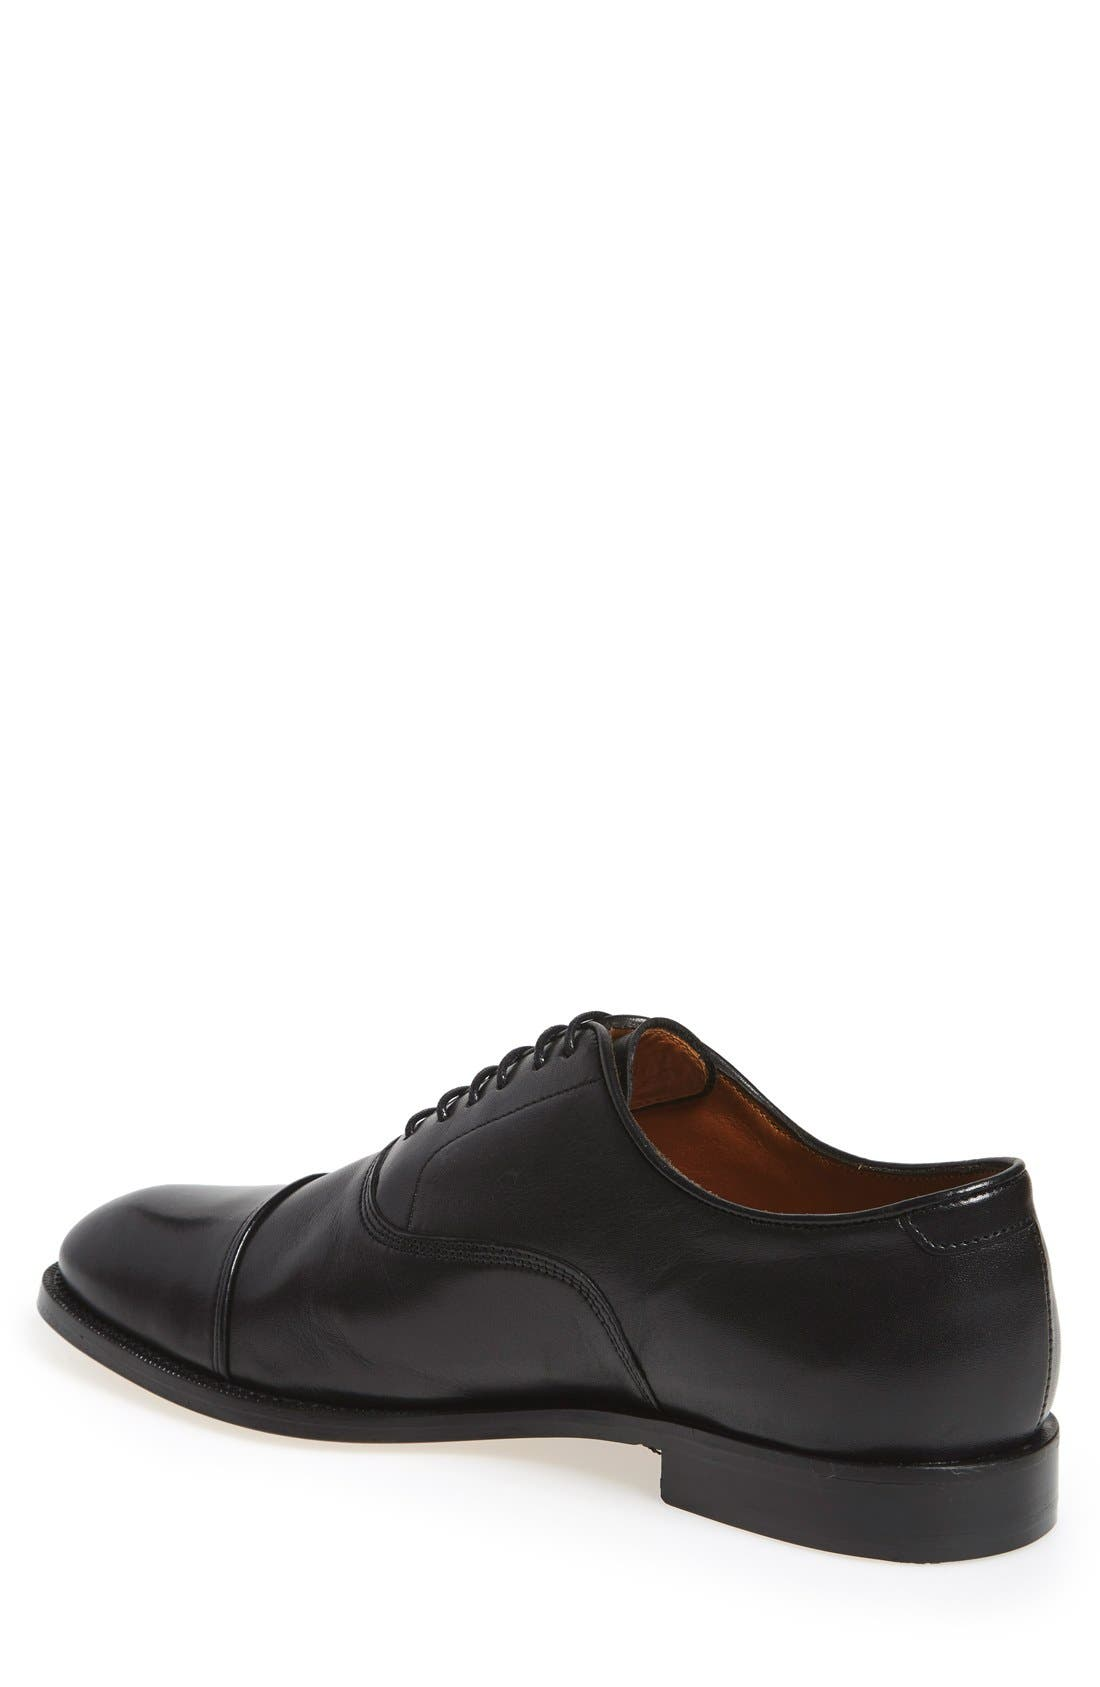 VINCE CAMUTO, 'Eeric' Cap Toe Oxford, Alternate thumbnail 2, color, BLACK LEATHER